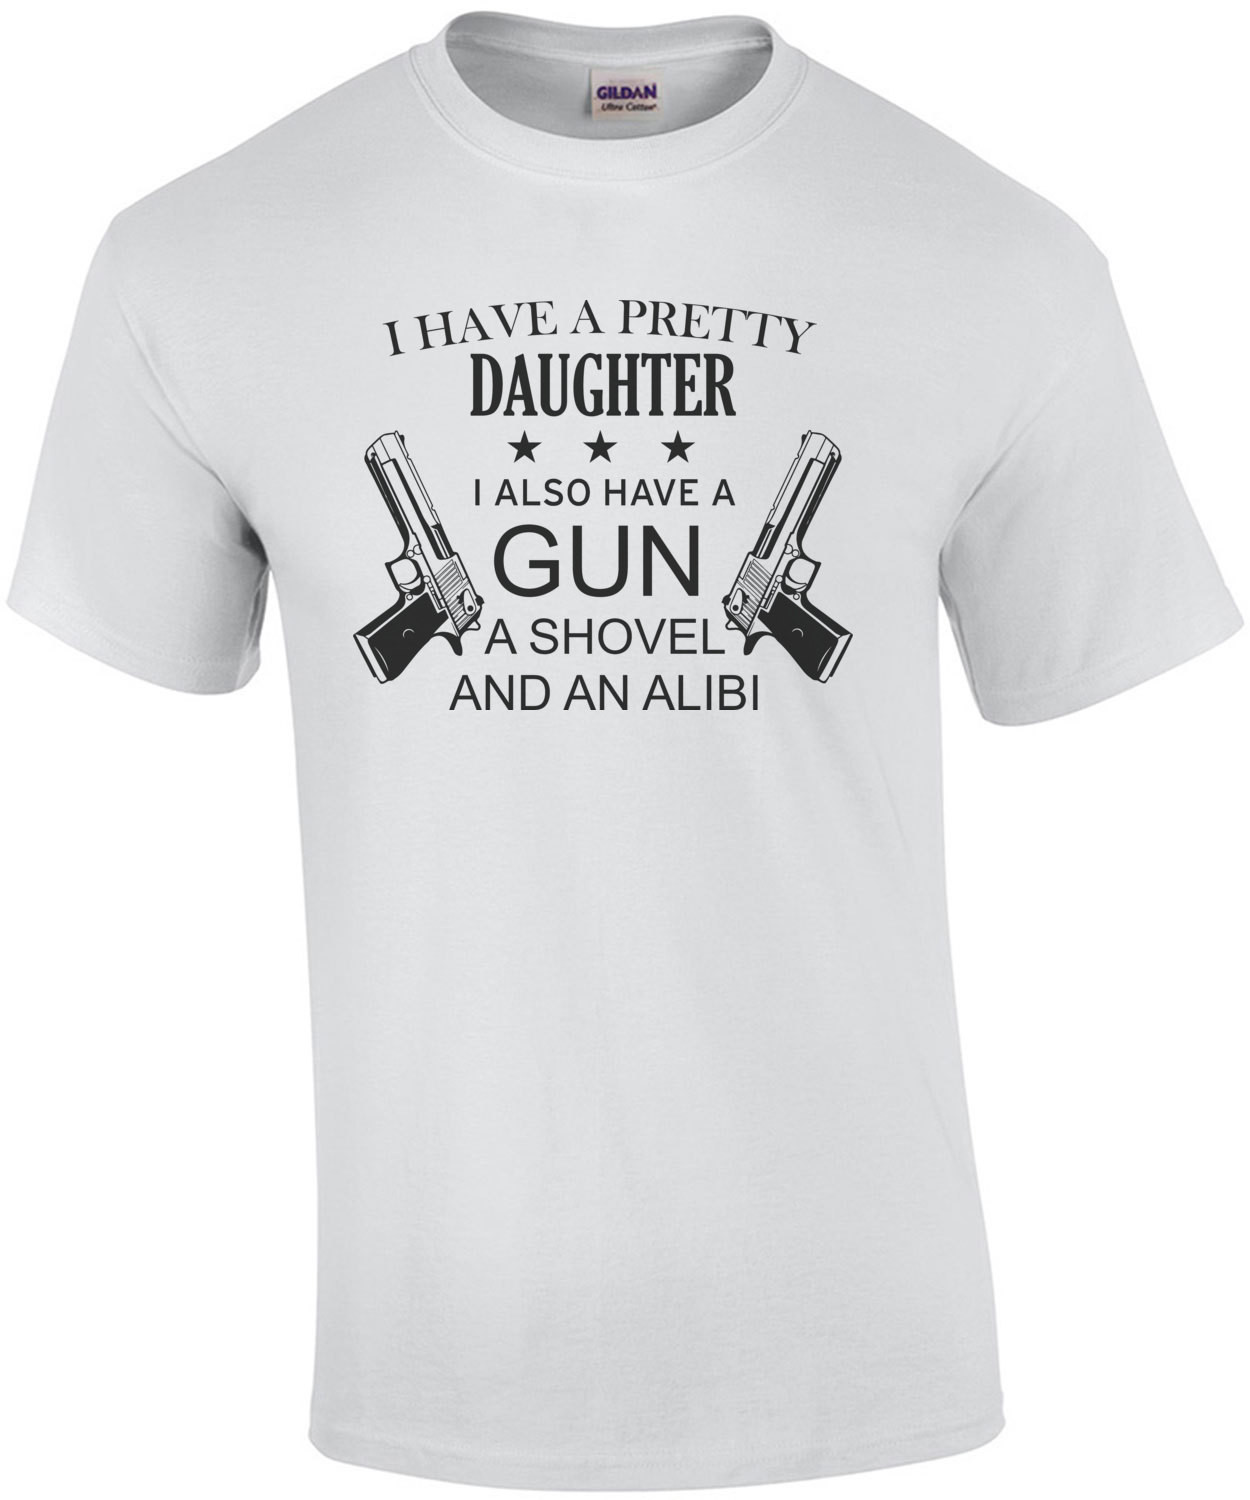 I have a pretty daughter. I also have a gun, a shovel, and an alibi - funny father daughter t-shirt